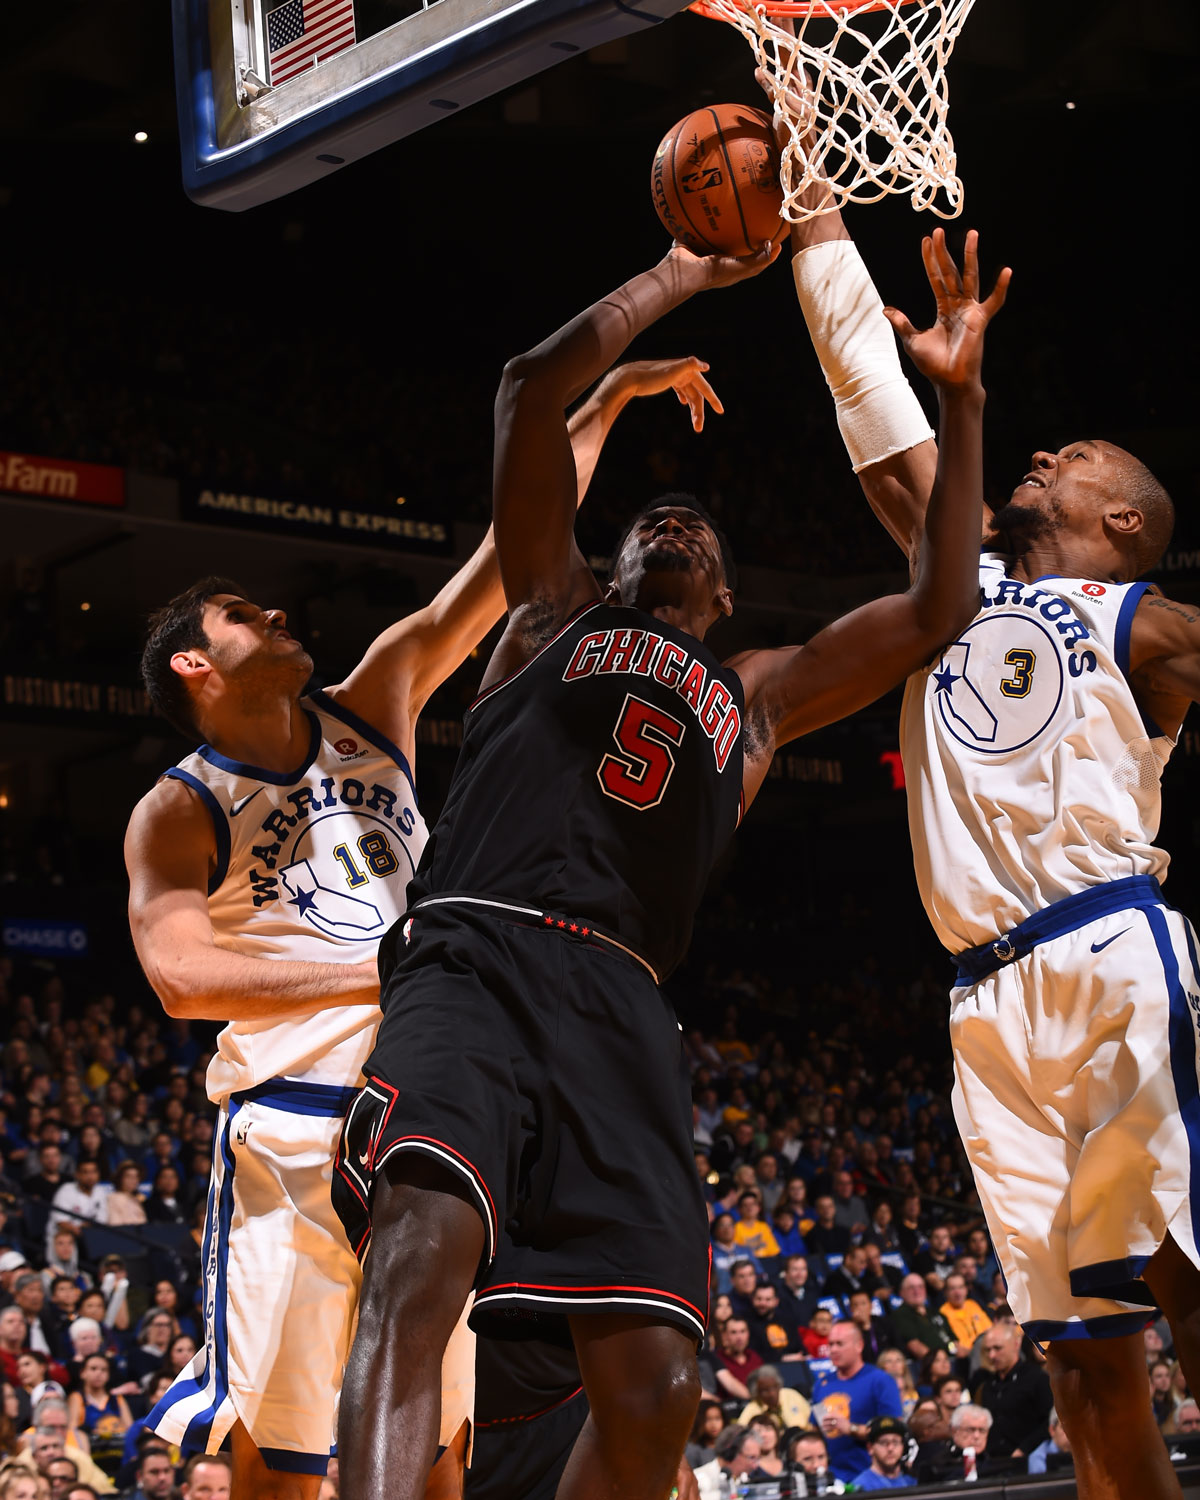 Bobby Portis #5 of the Chicago Bulls shoots the ball against the Golden State Warriors on November 24, 2017 at ORACLE Arena in Oakland, California.